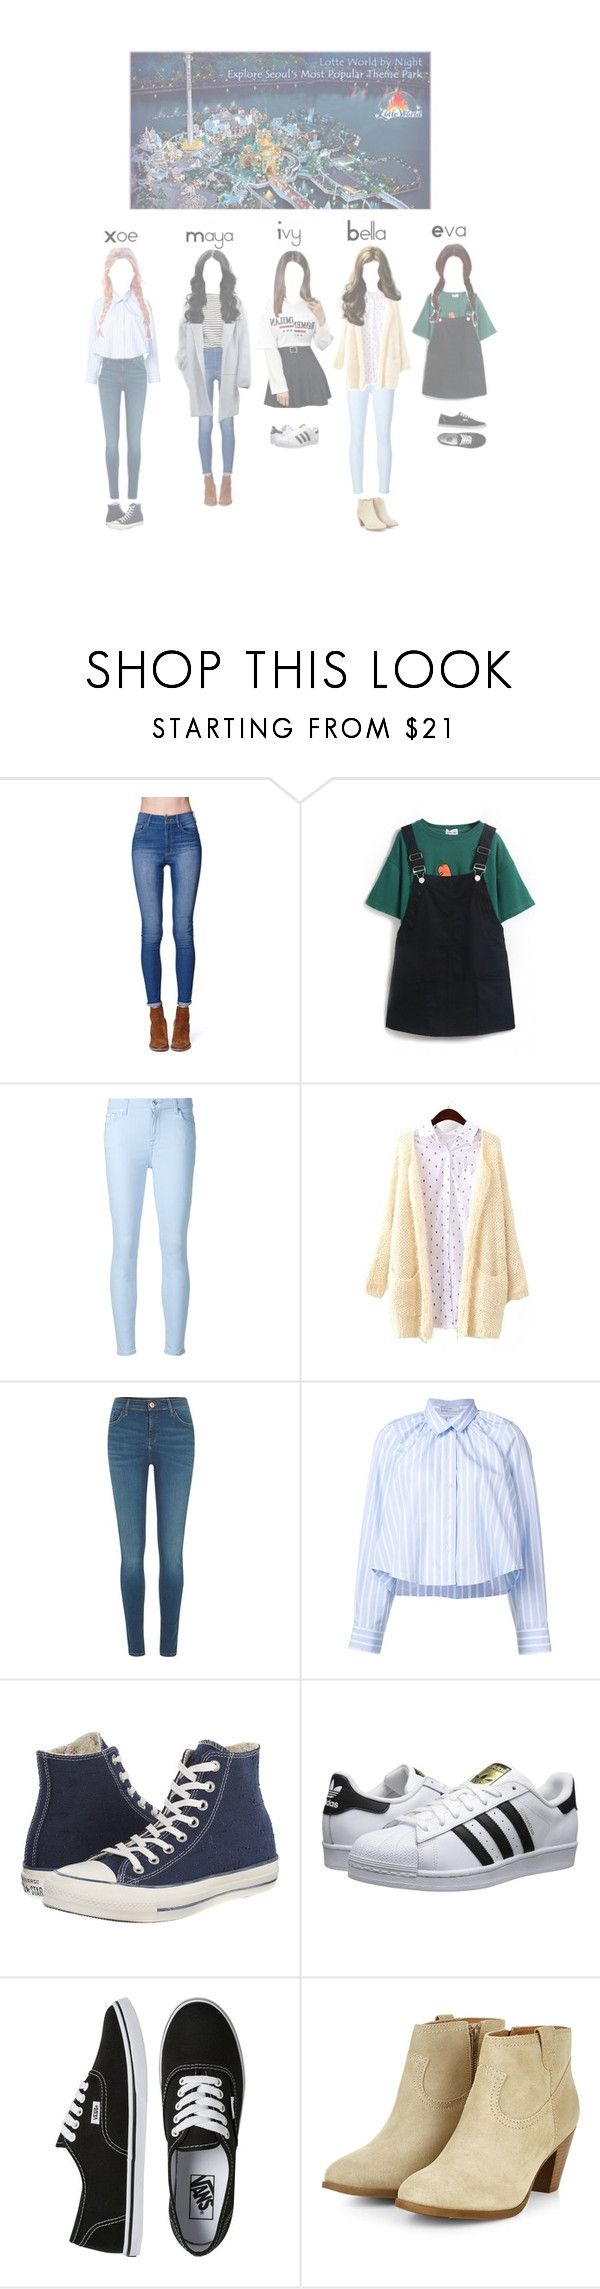 """""""Gems going to LOTTE world with girls of eightoeight!"""" by kpopgroups101 ❤ liked on Polyvore featuring Bullhead Denim Co., 7 For All Mankind, River Island, Tome, Guide London, Converse, adidas Originals and Vans"""